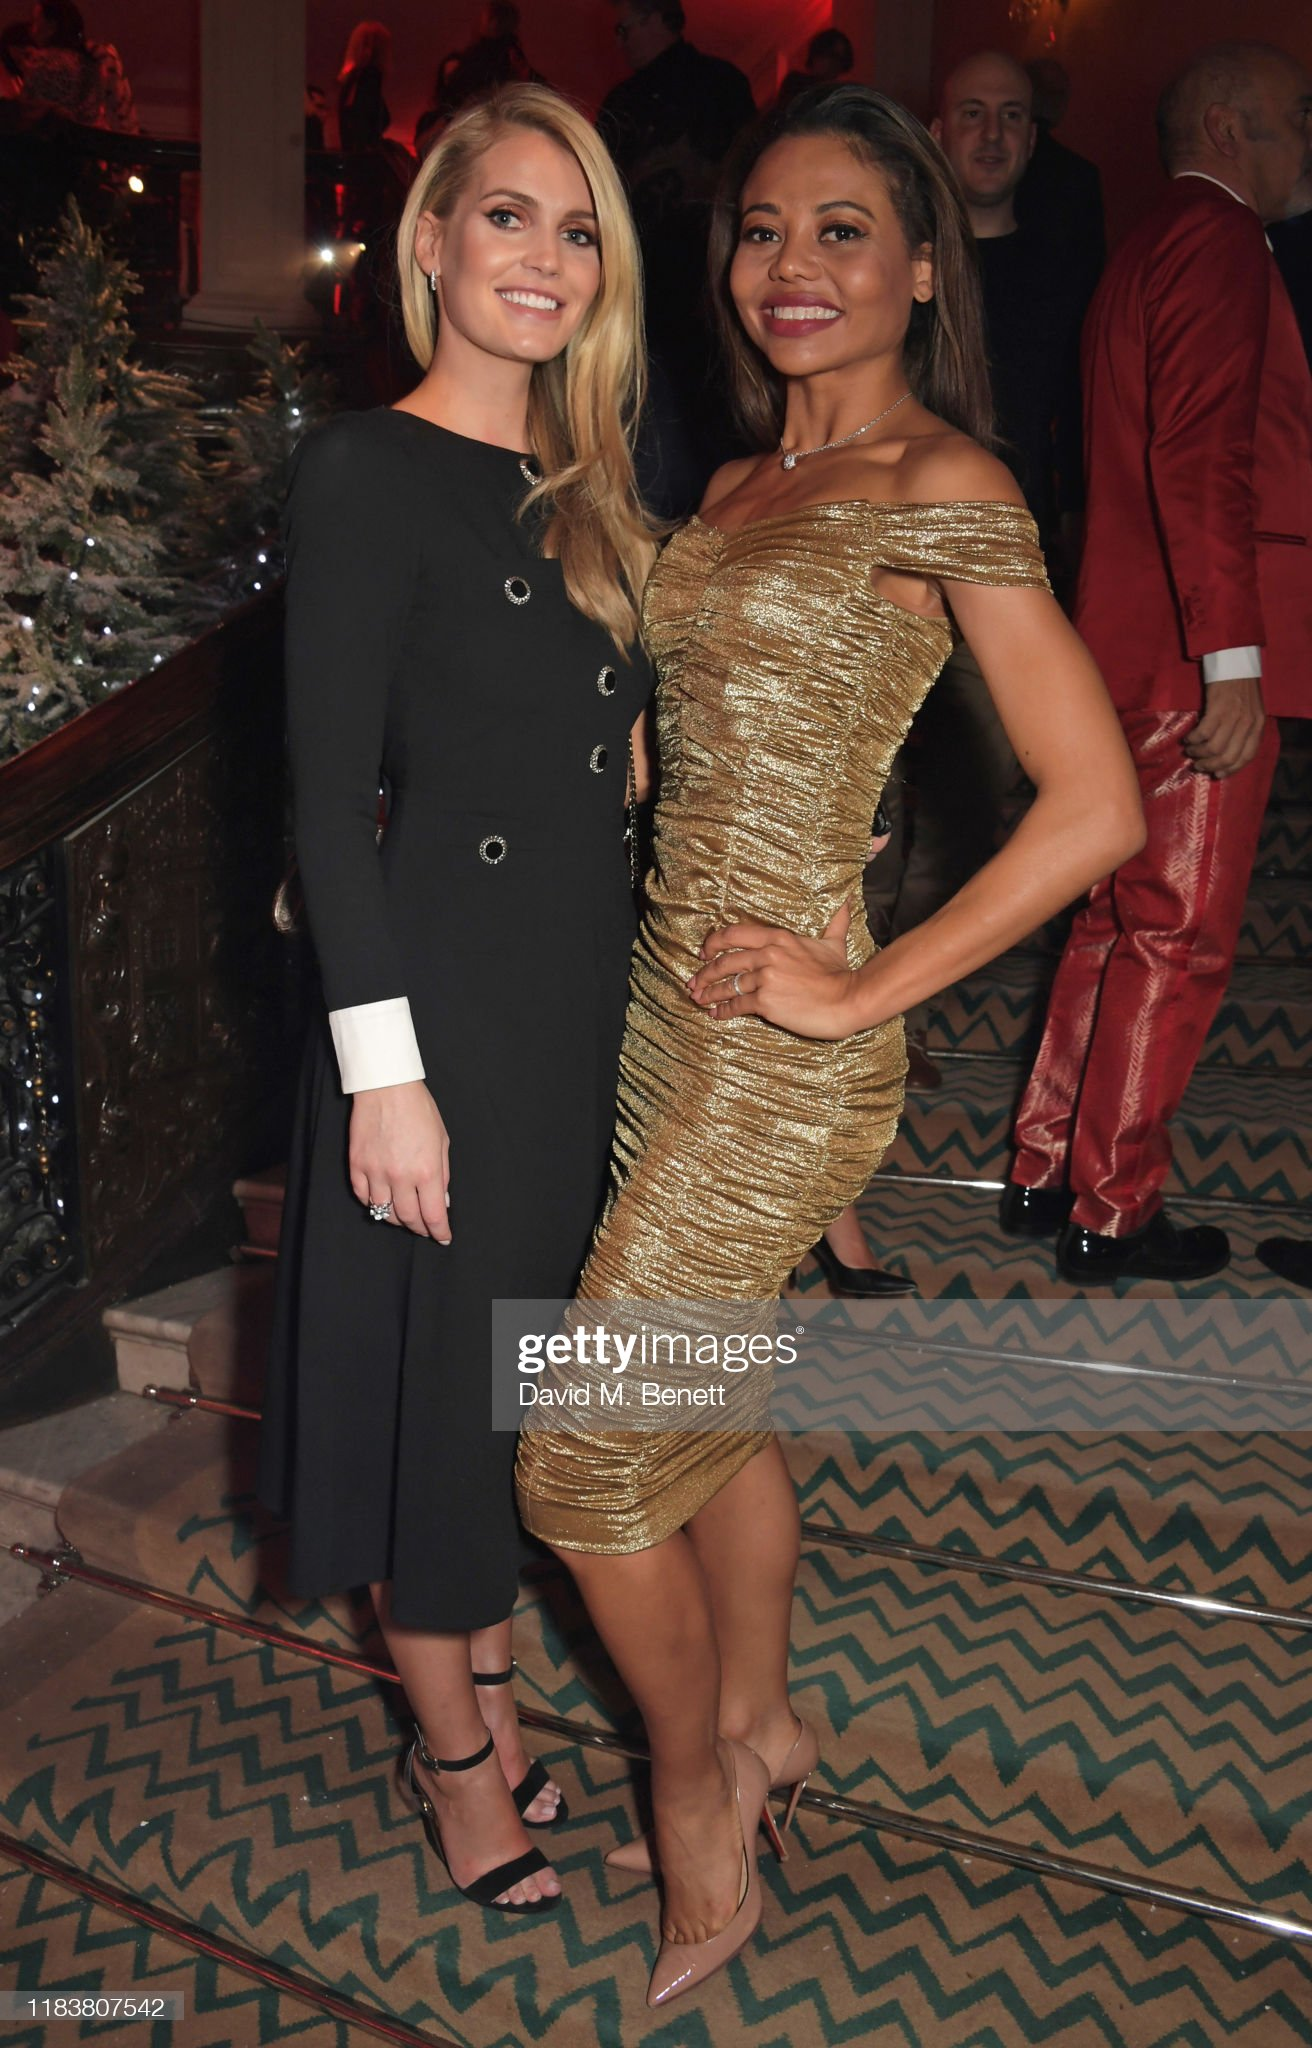 https://media.gettyimages.com/photos/lady-kitty-spencer-and-emma-weymouth-attend-the-launch-of-the-tree-picture-id1183807542?s=2048x2048